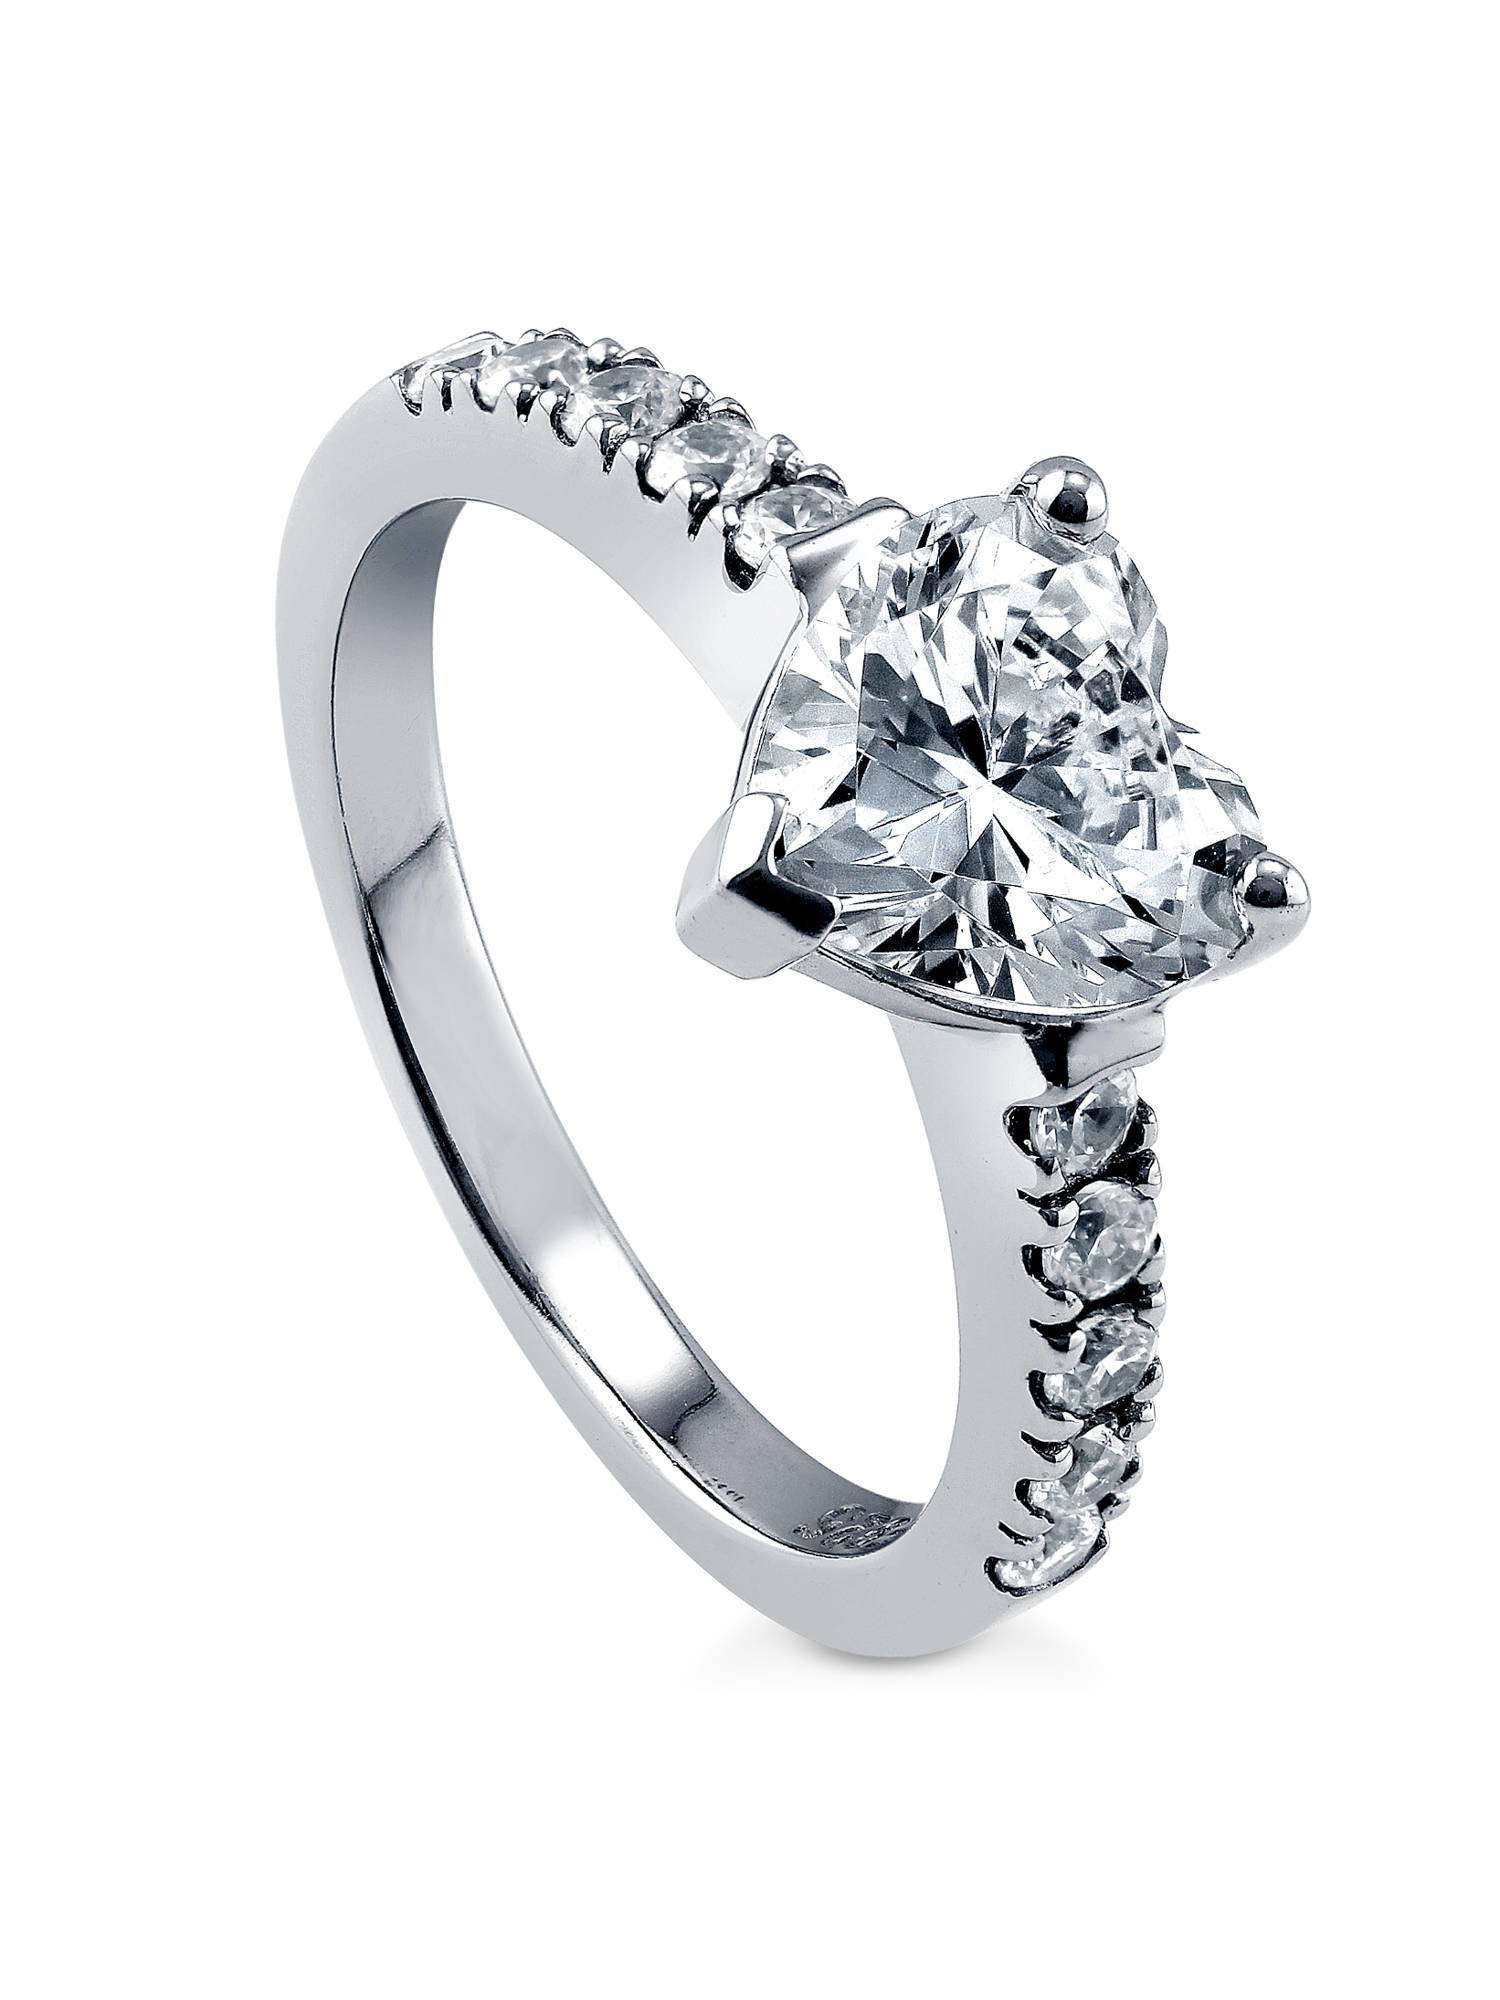 Rhodium Plated Silver Heart Shaped Cubic Zirconia CZ Solitaire Promise Engagement Ring Size 10